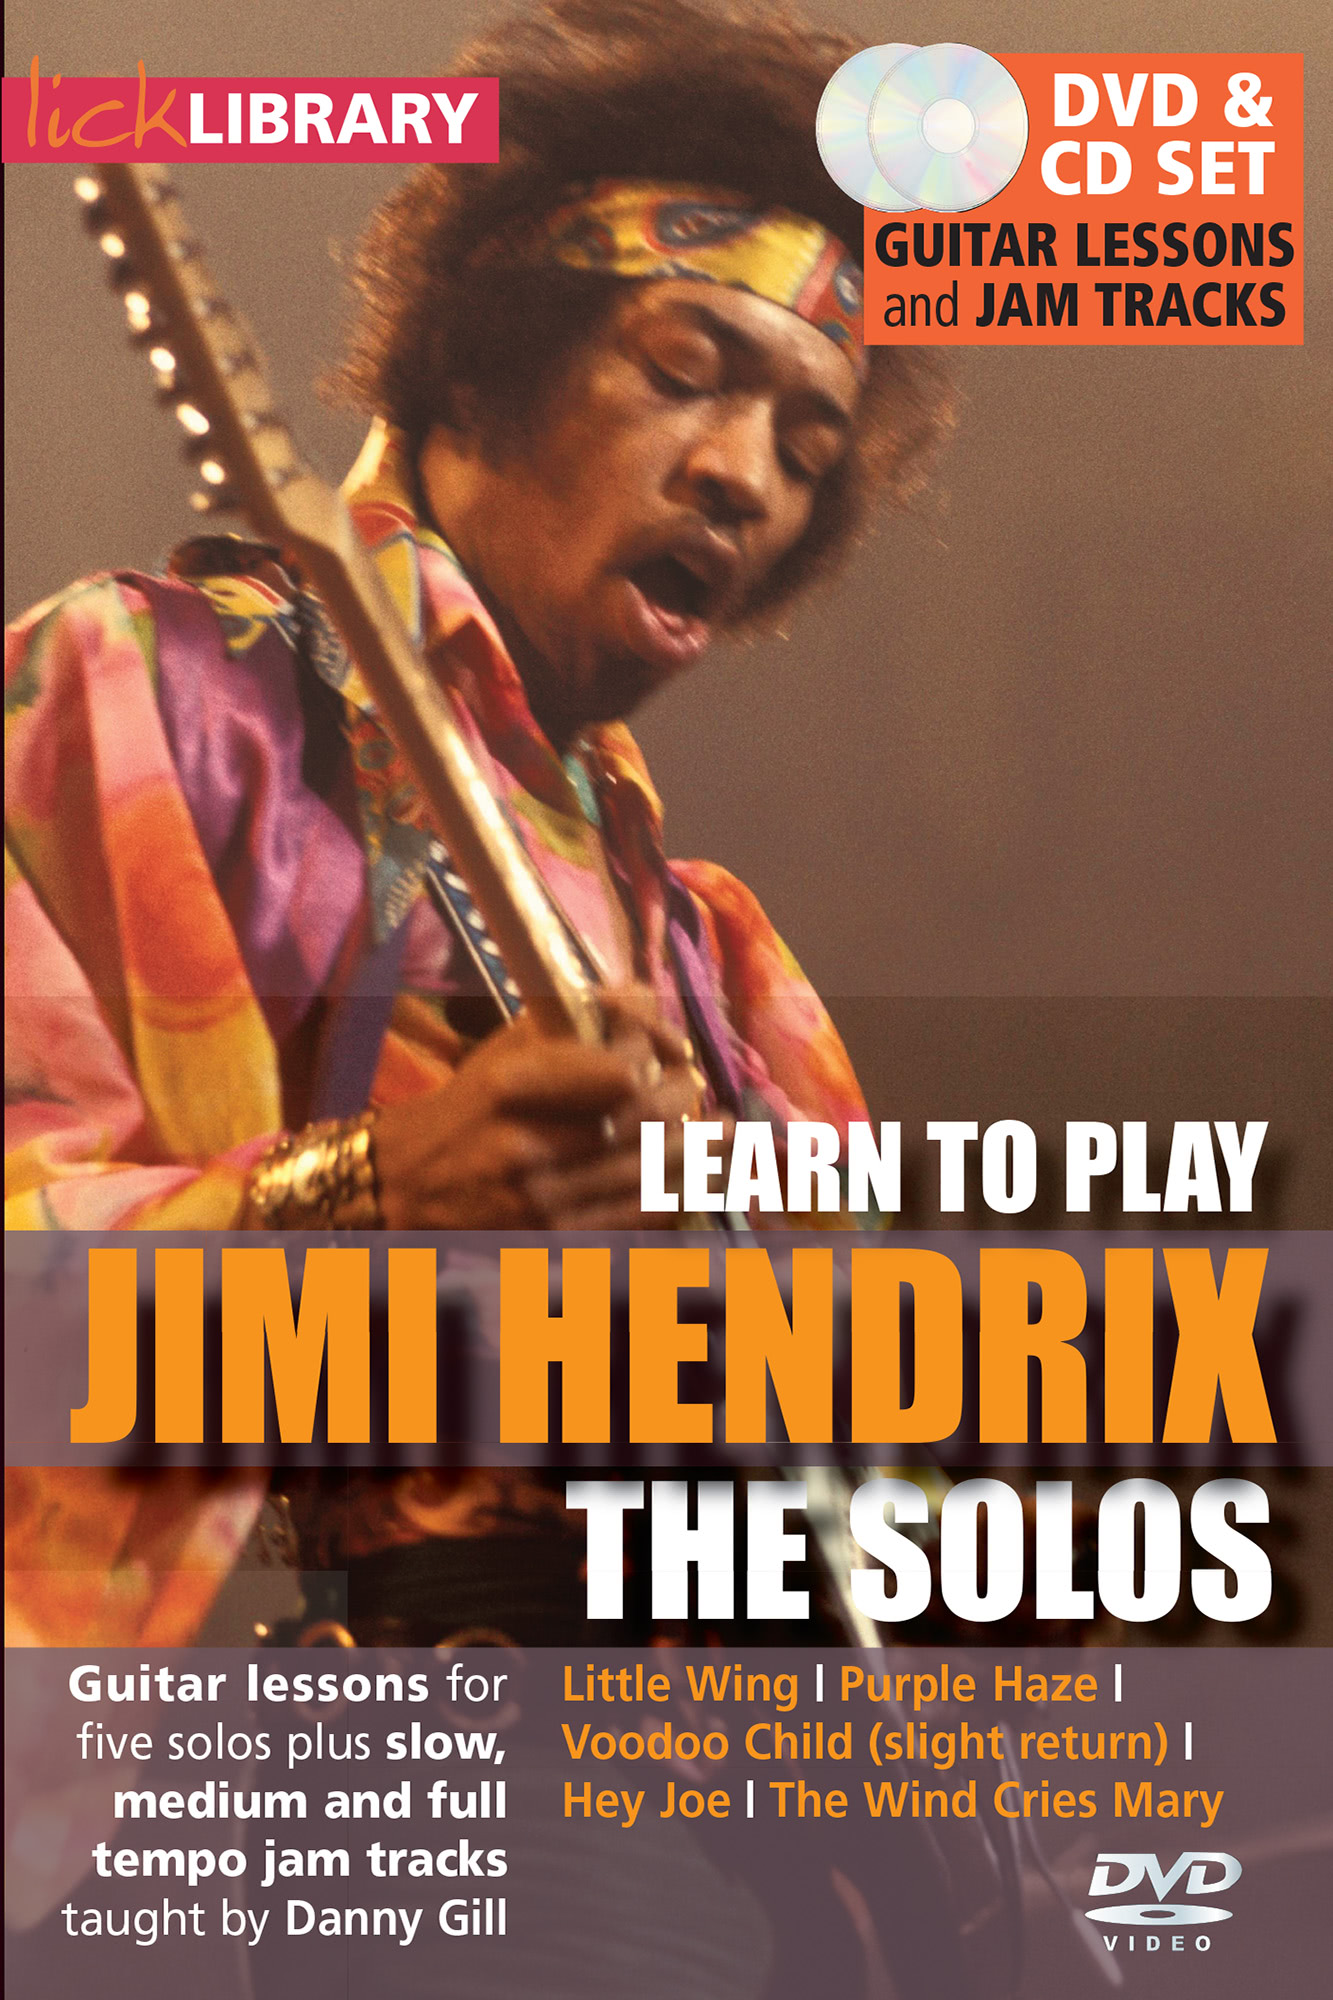 Learn To Play Jimi Hendrix - The Solos